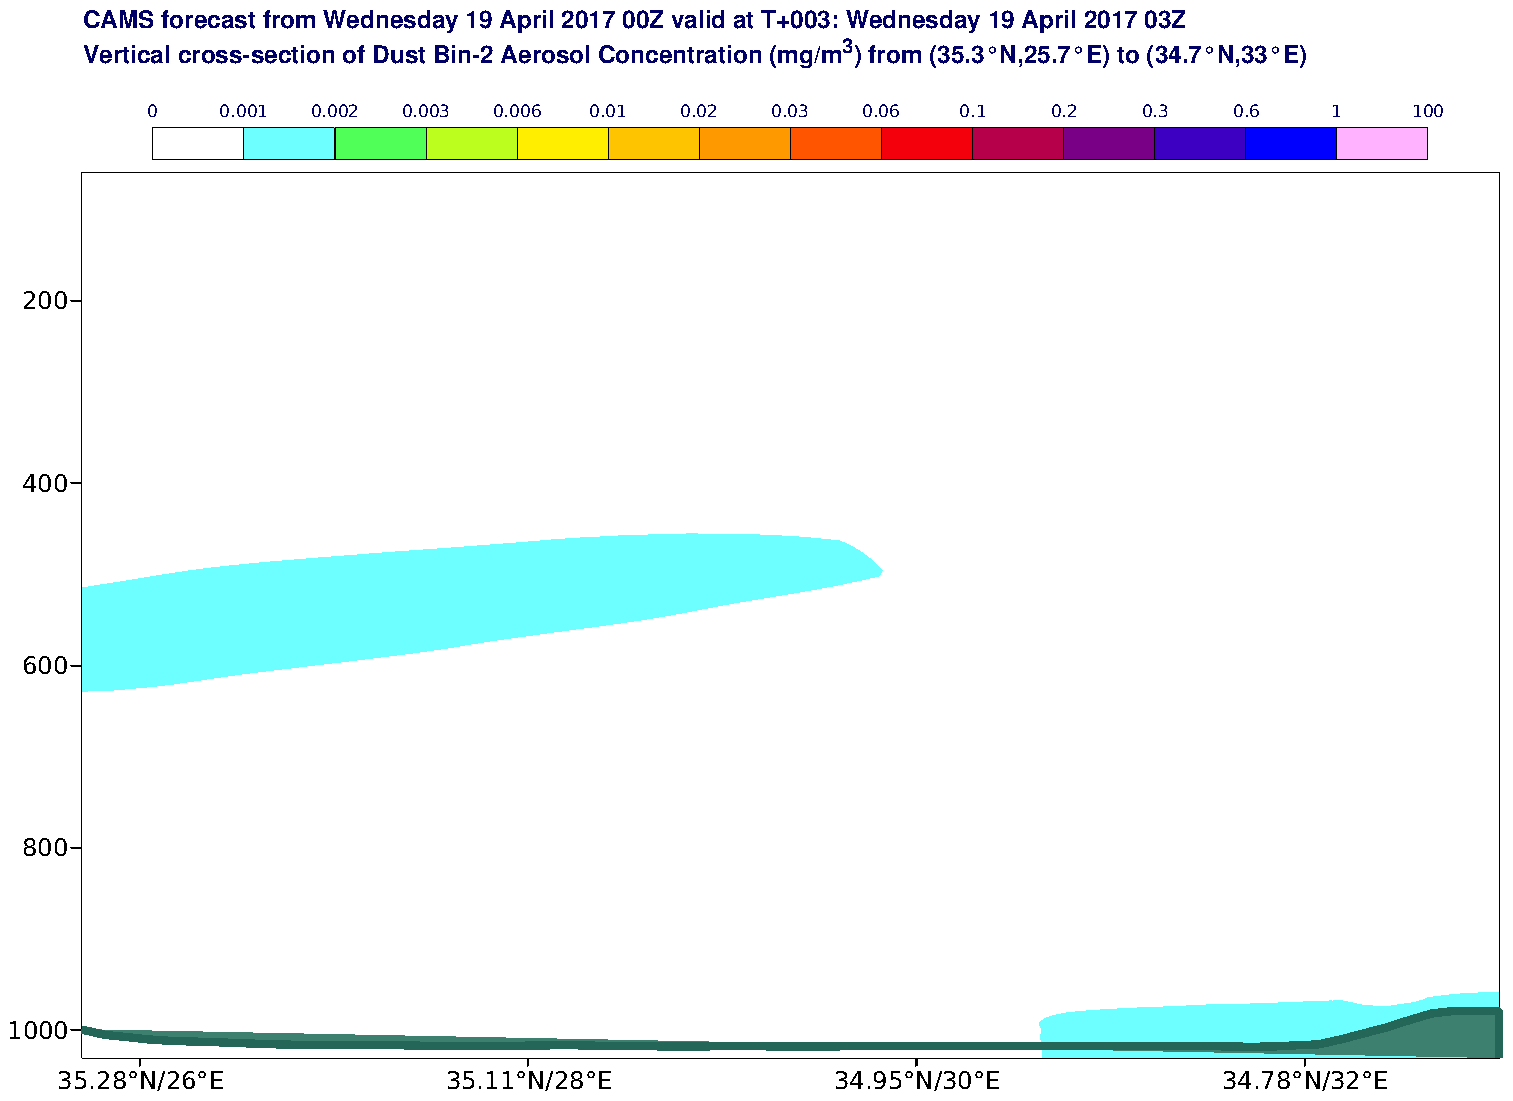 Vertical cross-section of Dust Bin-2 Aerosol Concentration (mg/m3) valid at T3 - 2017-04-19 03:00